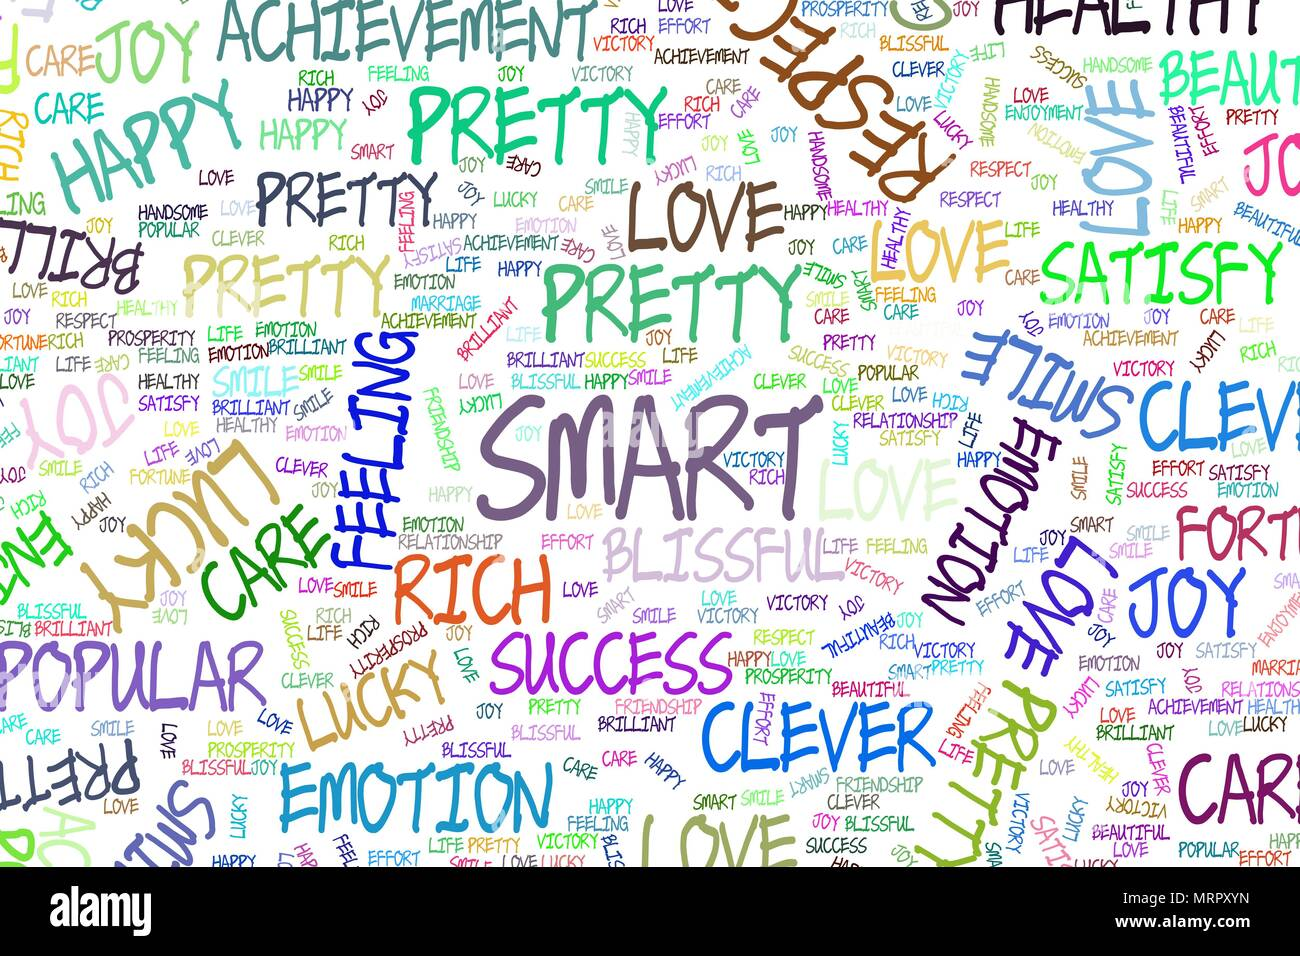 Smart Decorative Hand Drawn Positive Emotion Word Cloud